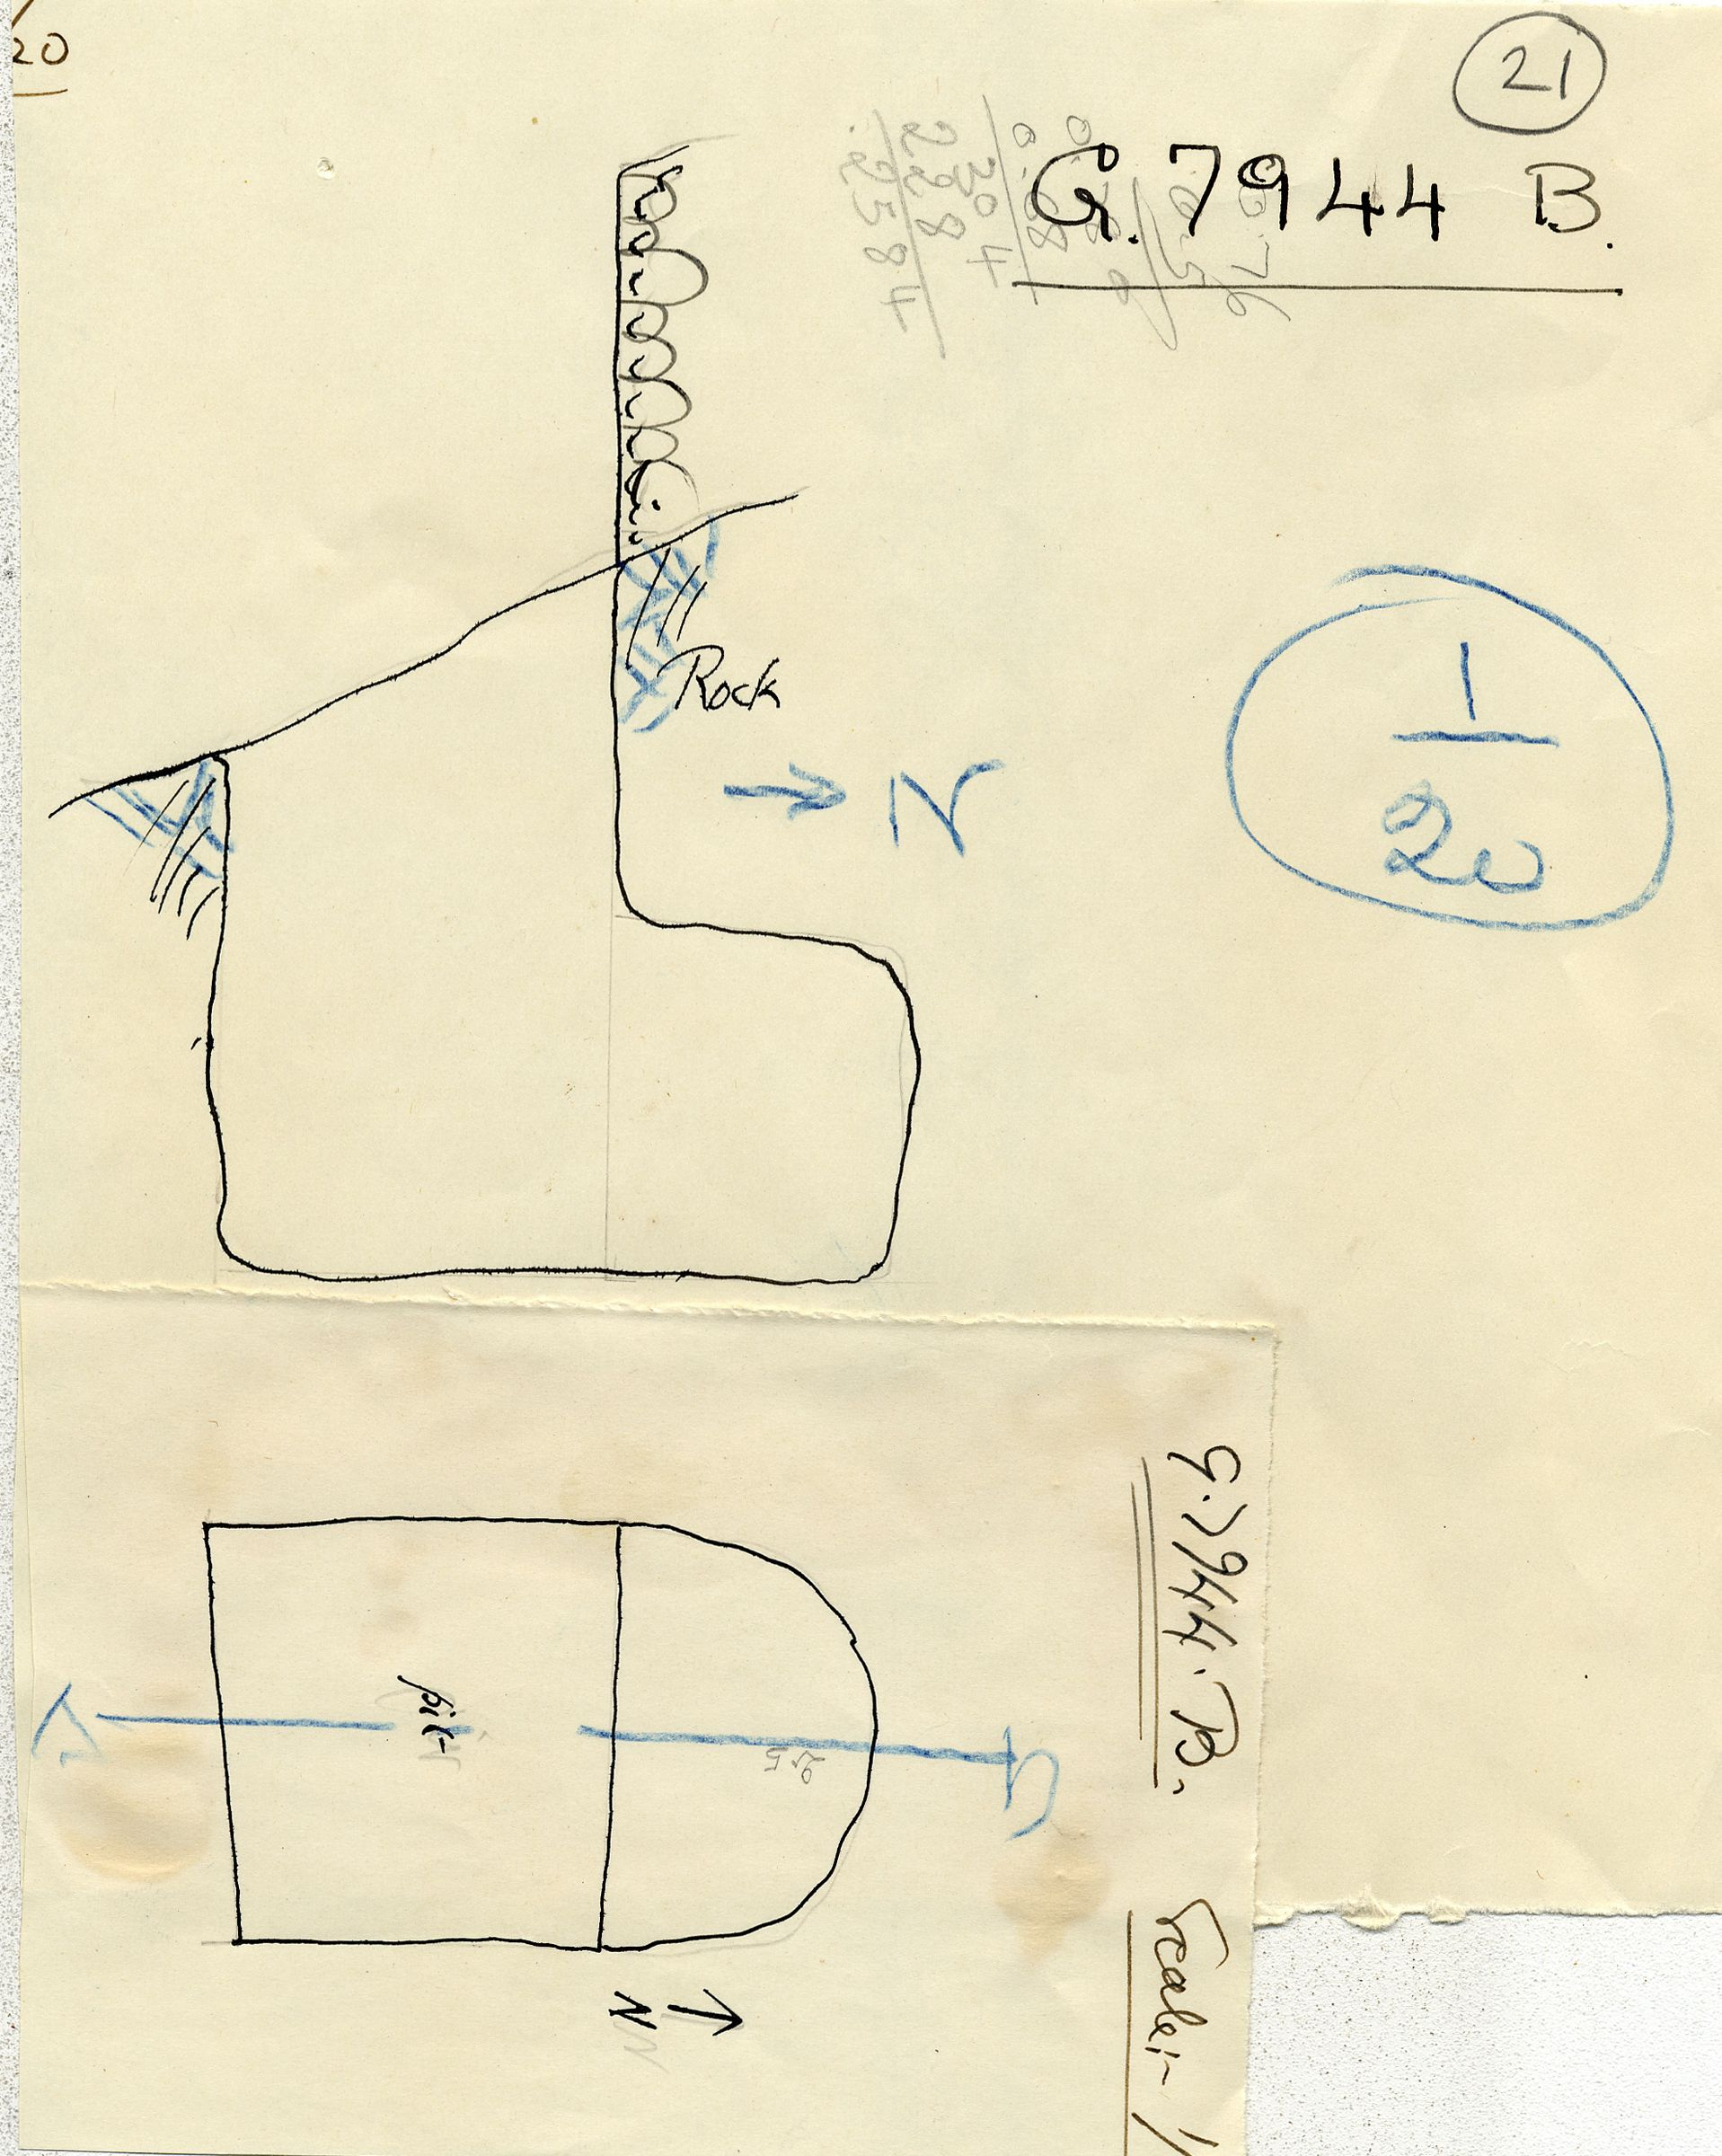 Maps and plans: G 7944, Shaft B